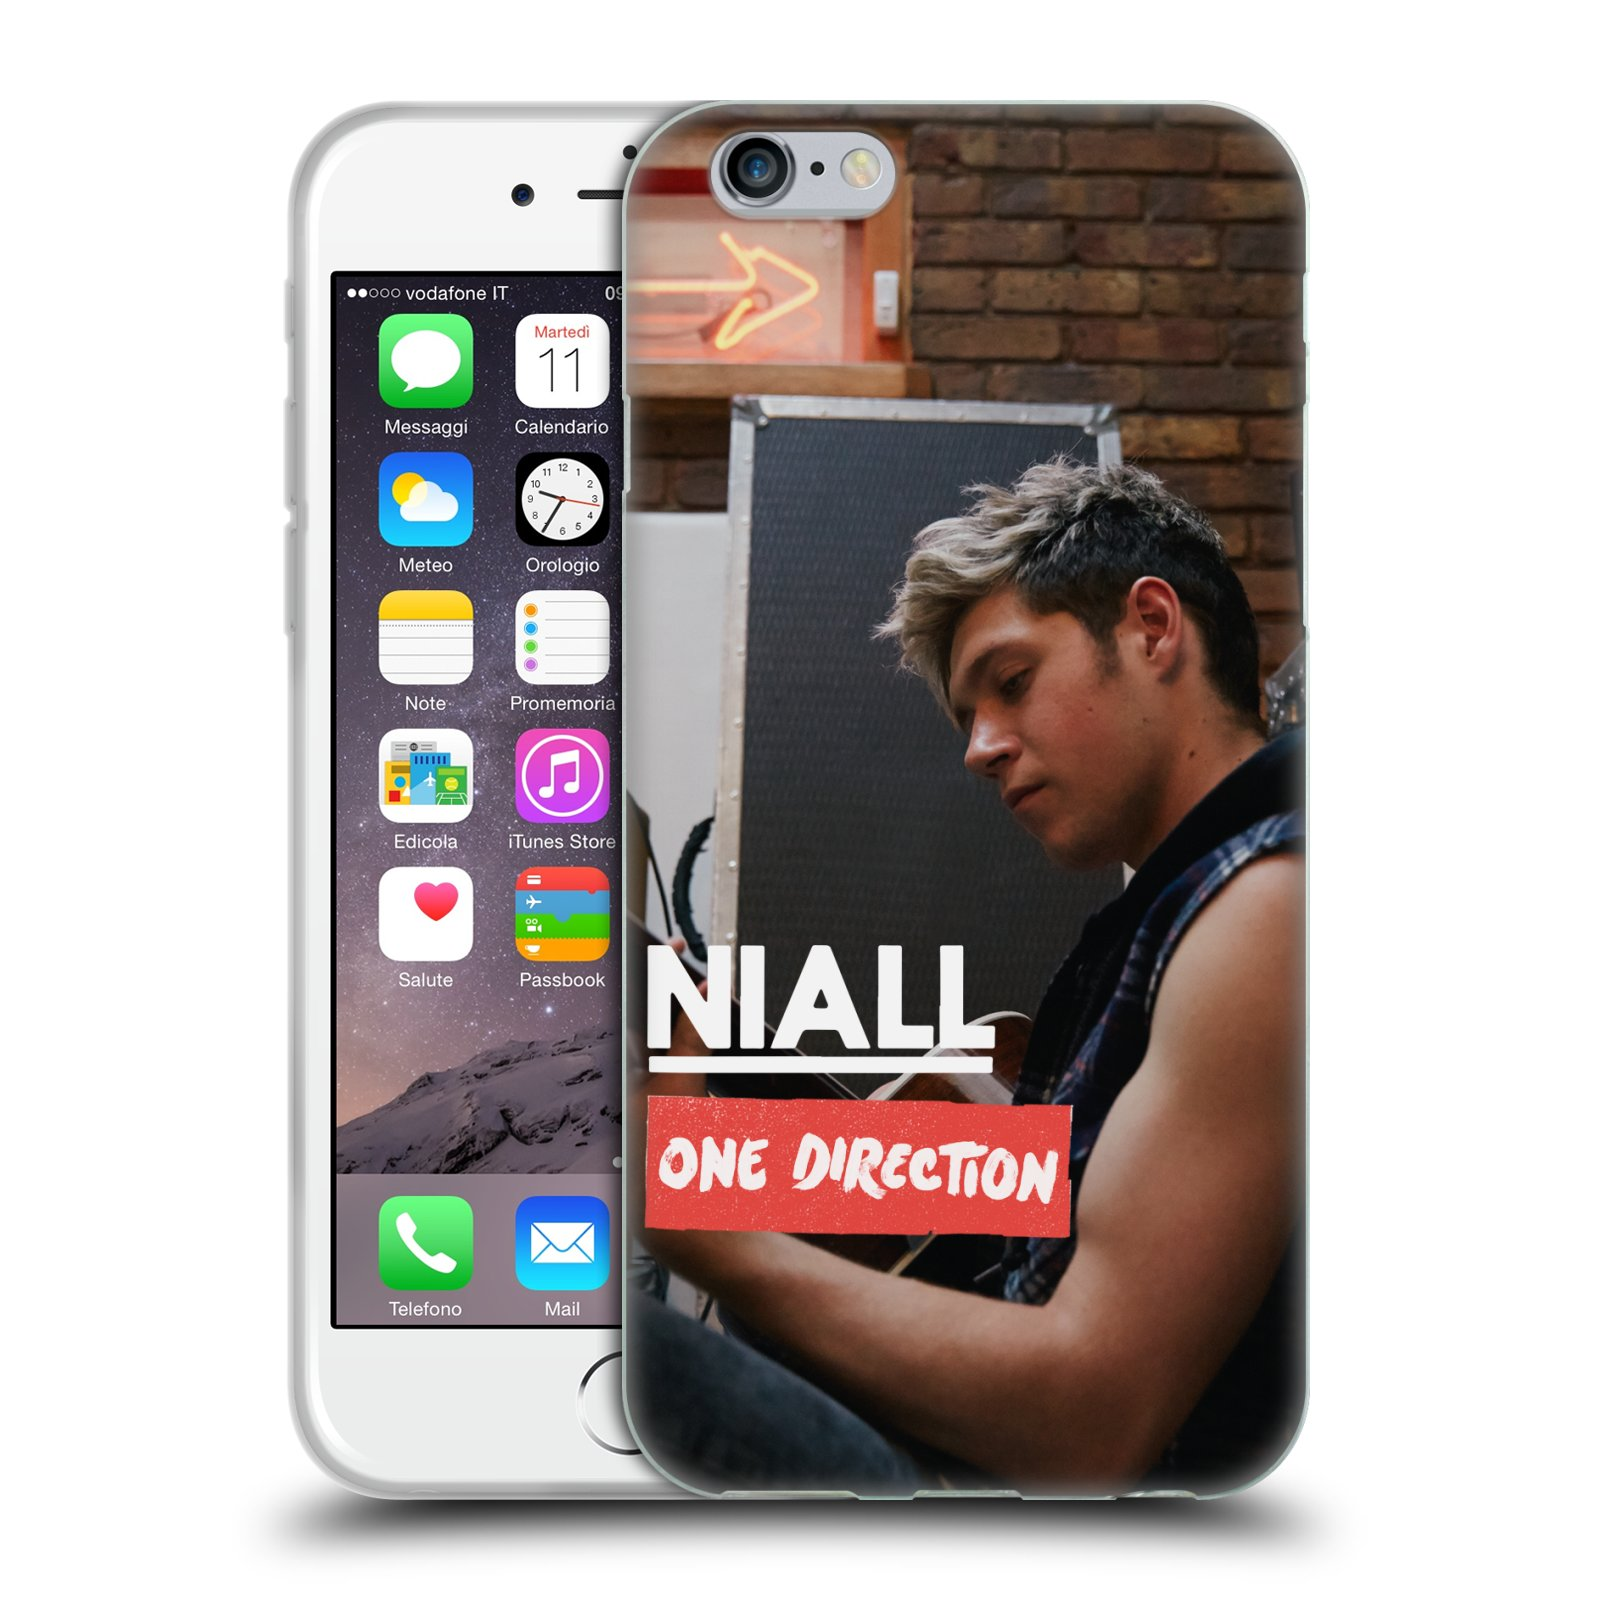 official one direction 1d niall horan photo soft gel case